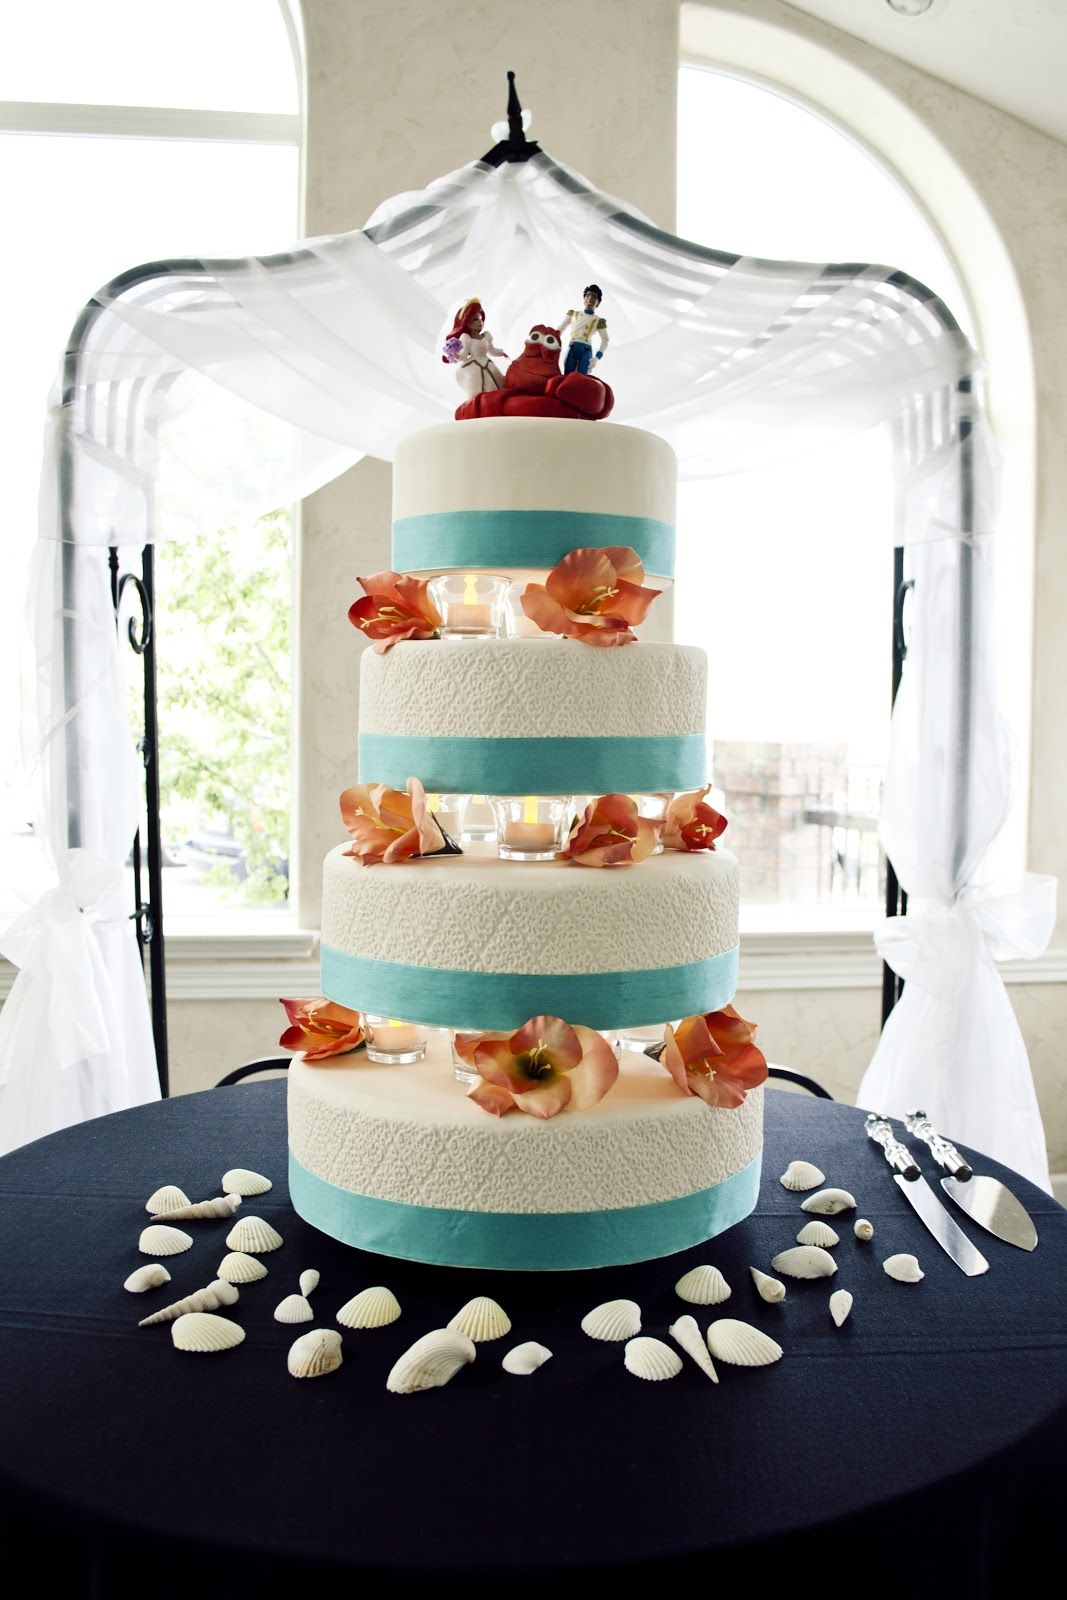 Little Mermaid Wedding Cake My Bro Made For His Own